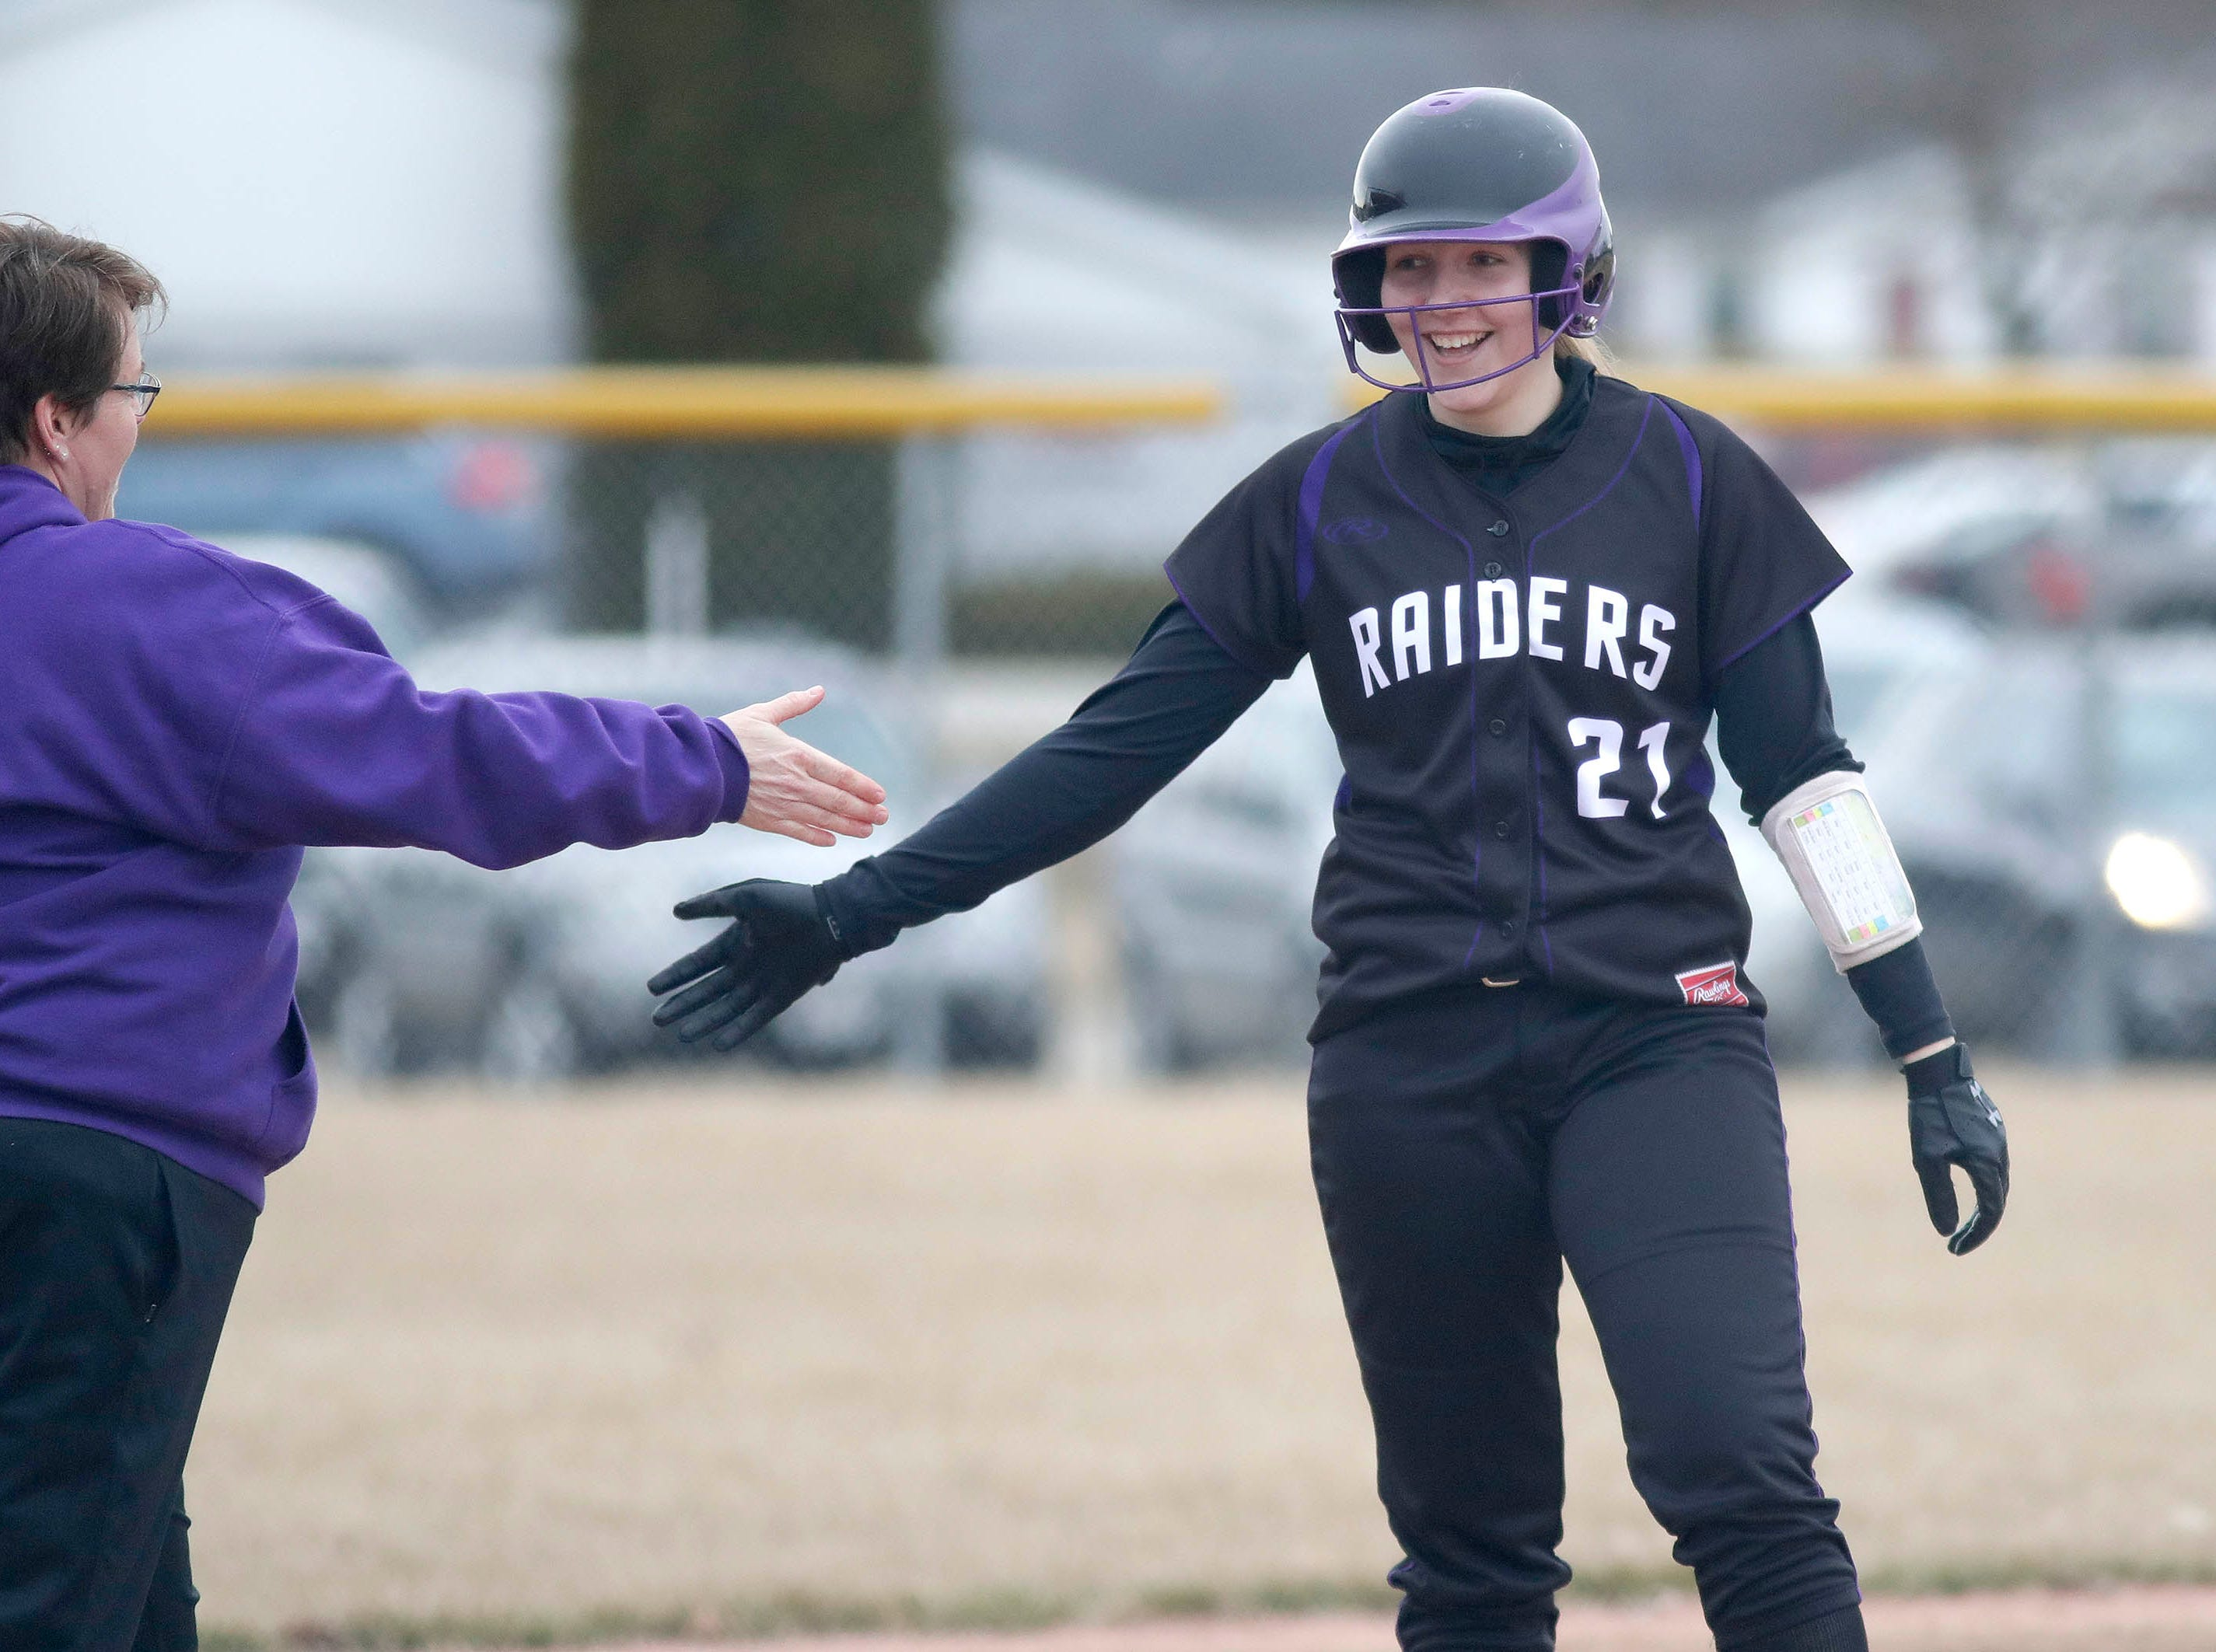 Kiel's Andrea Meyer (21) smiles as she made it to third base against Winnebago Lutheran, Thursday, March 28, 2019, in Fond du Lac, Wis.